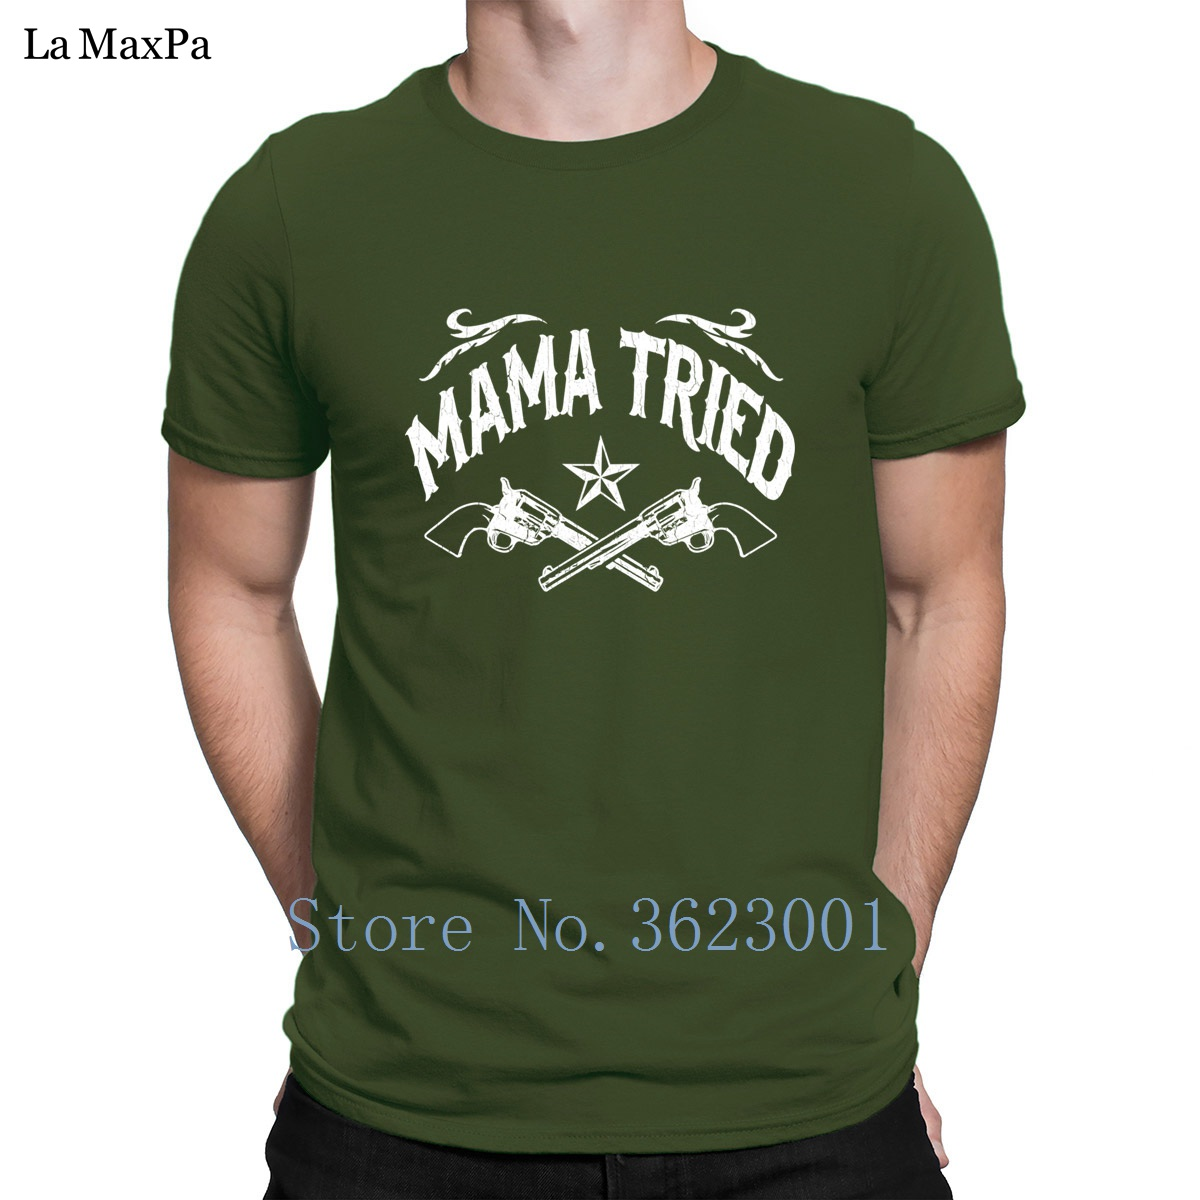 Create Big Sizes T Shirt For Men Mama Tried Vintage Distressed Look T Shirt Stylish New Tshirt Vintage Hot Sale Basic Solid